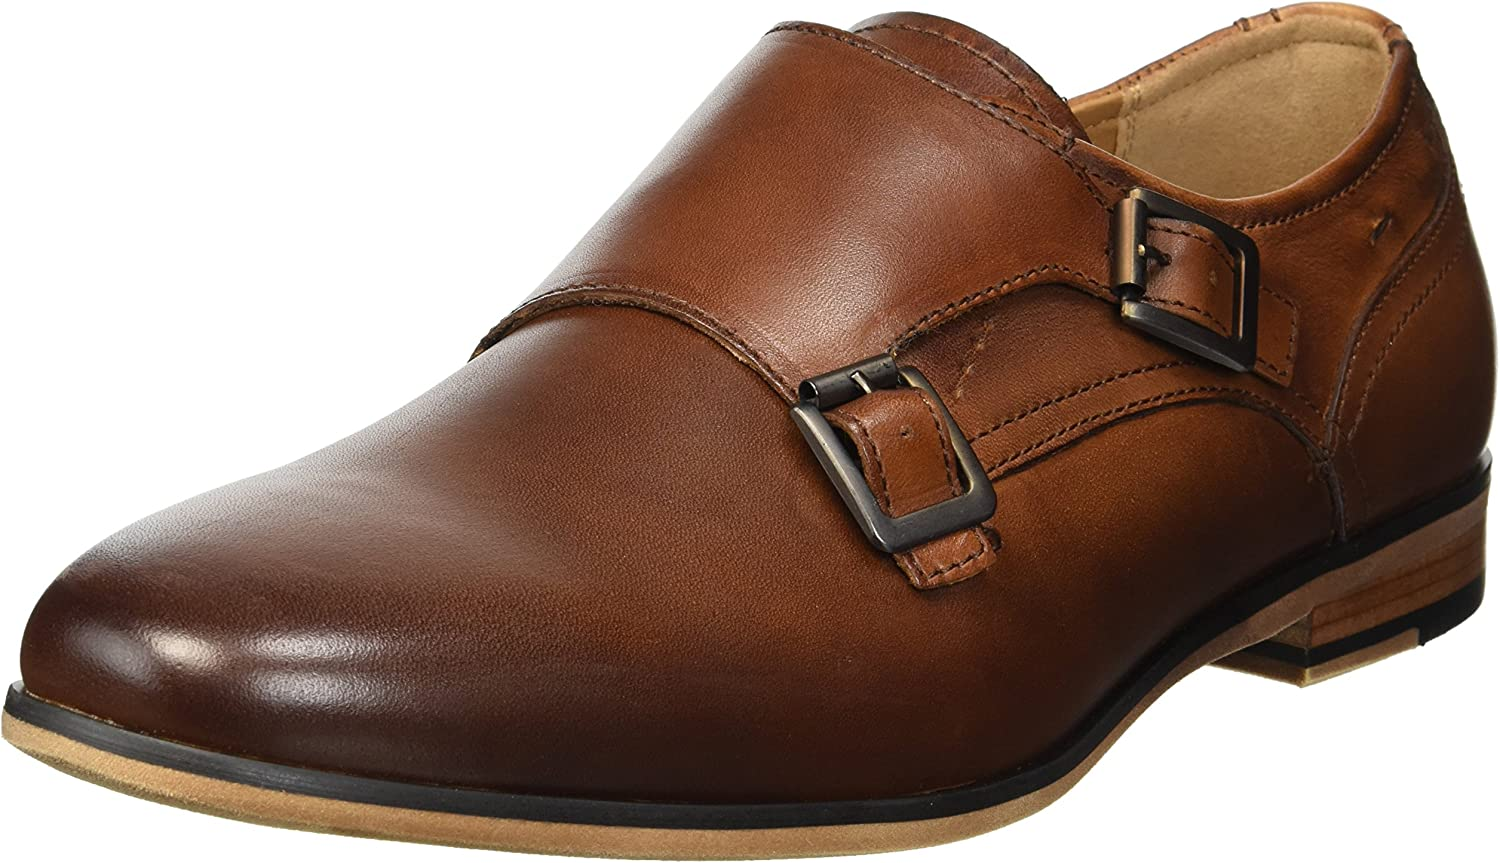 TALLA 41 EU. Kenneth Cole Reaction Guy Monk, Zapatos de Cordones Oxford para Hombre